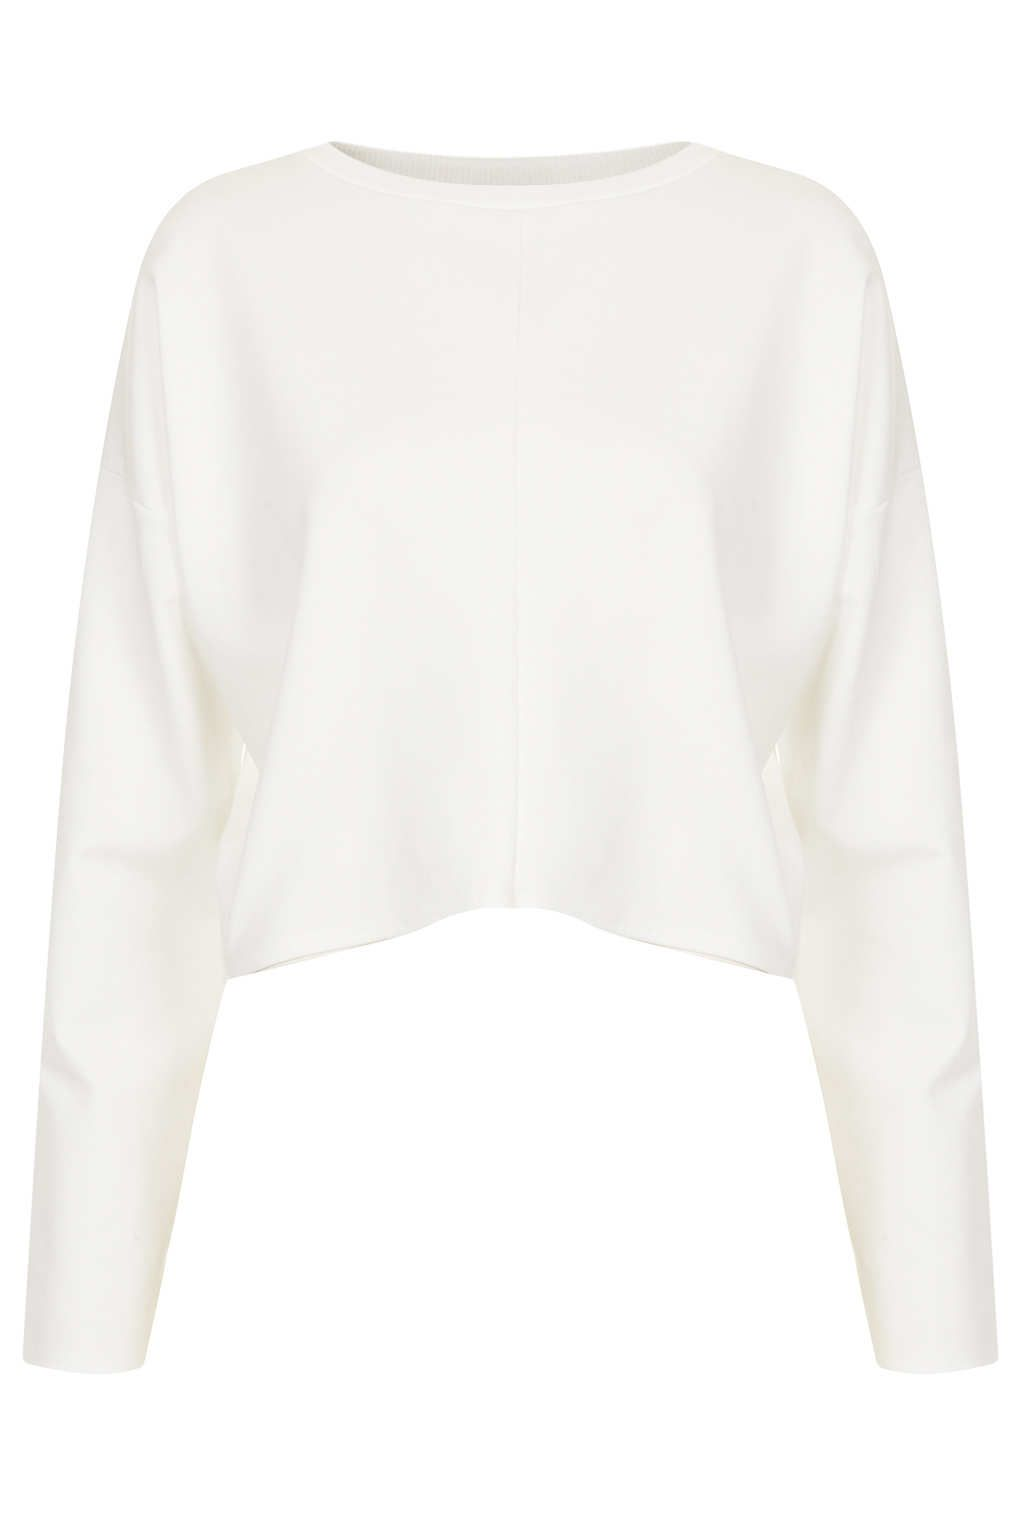 df58153b9ae22 White crop top + strike pencil skirt   perfect match !!!!  topshop. Find  this Pin and more on Shop Top by CYOS. Tags. Sporty Chic